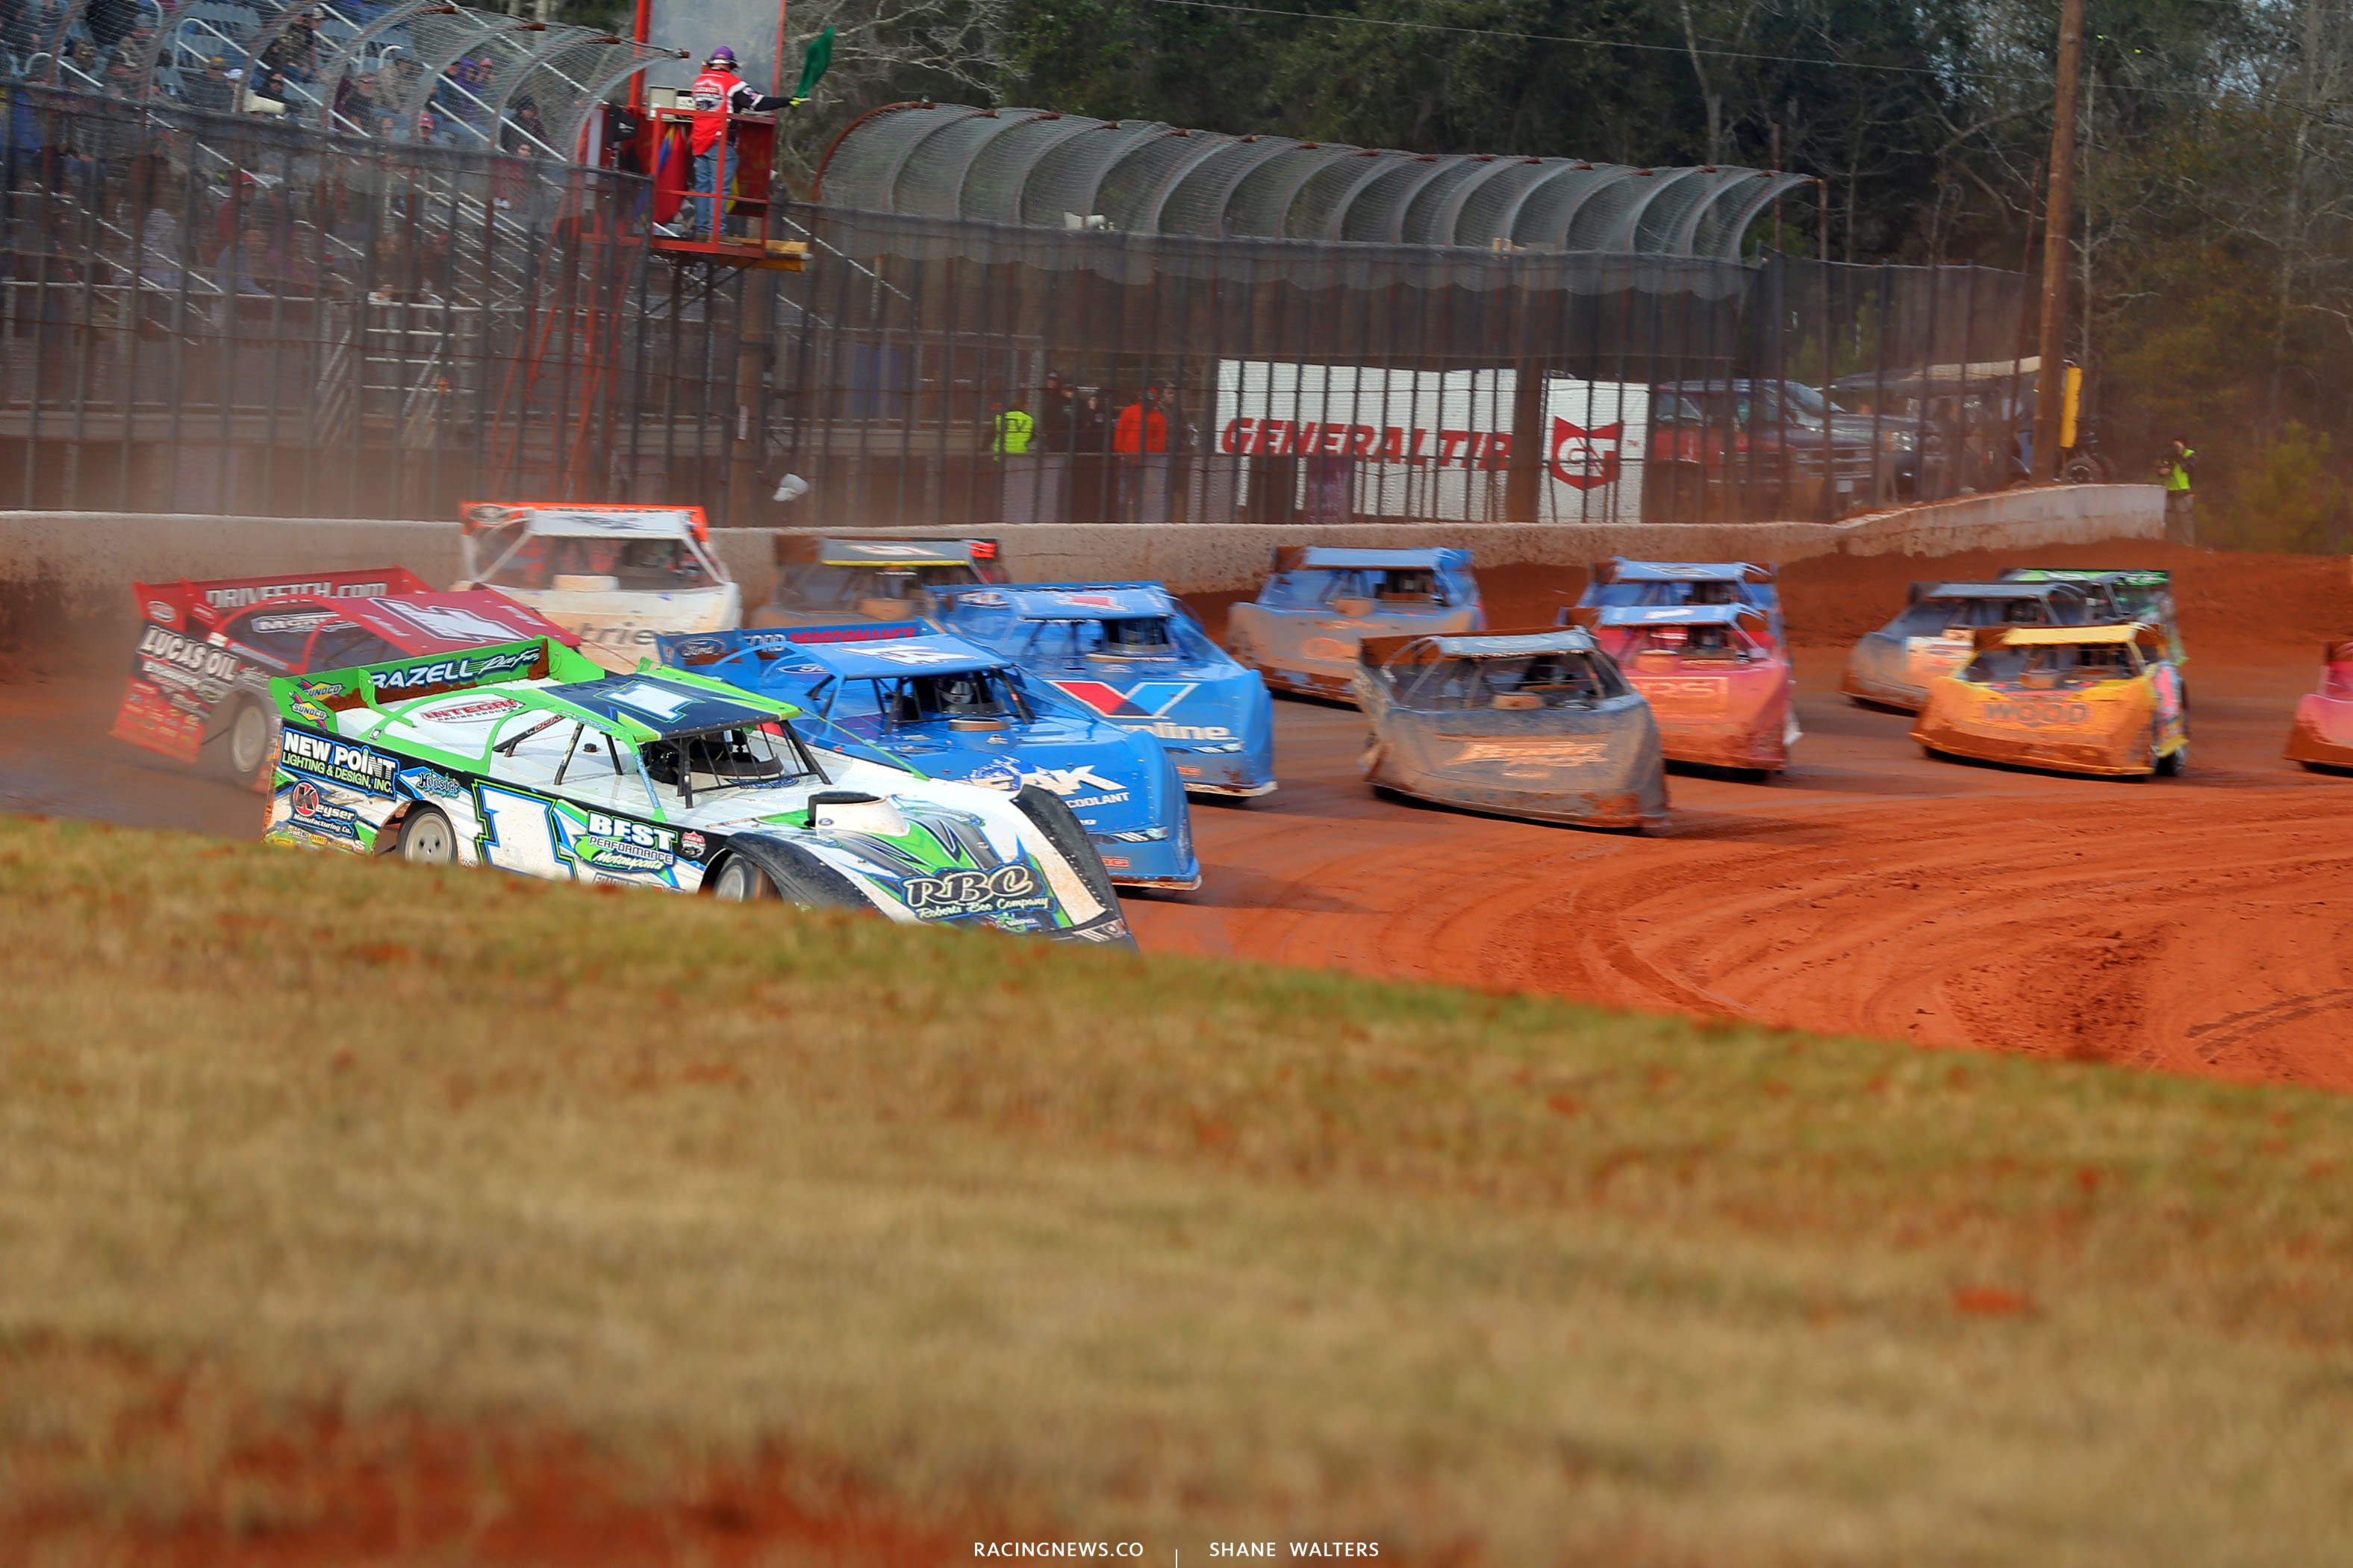 Tyler Erb leads the Lucas Oil Late Model field at Golden Isles Speedway 6199